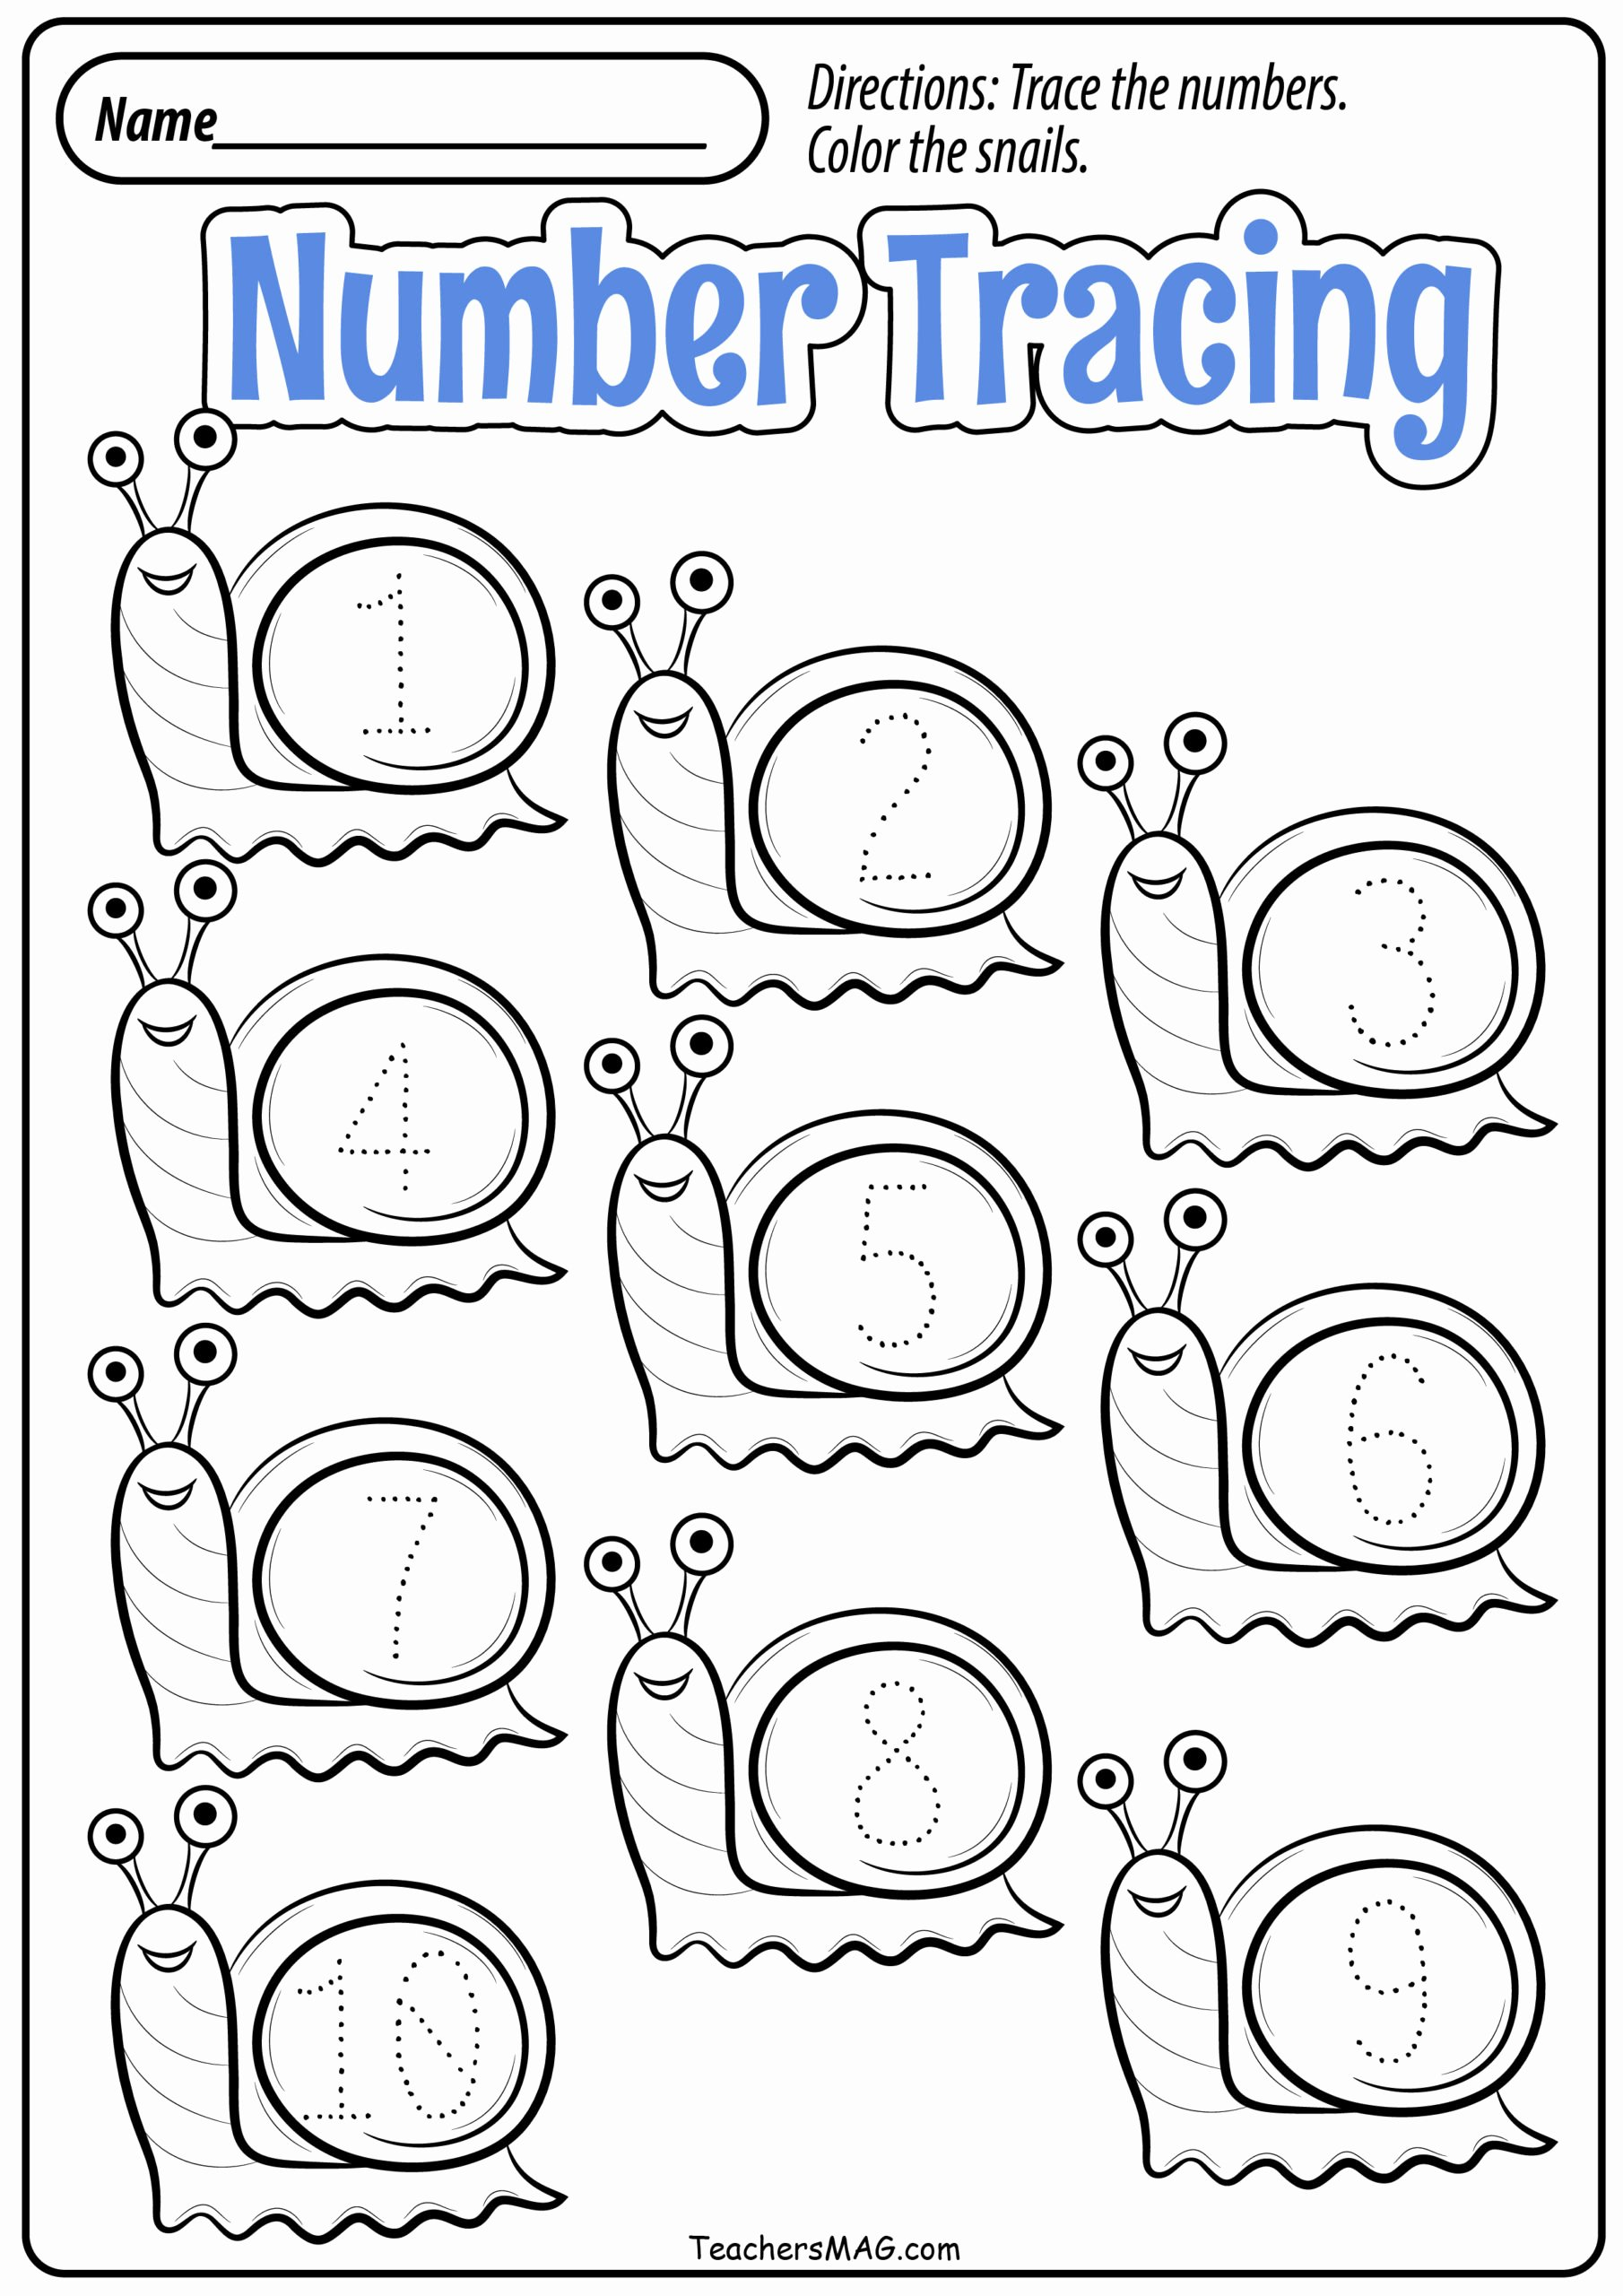 Addition Worksheets For Preschoolers With Pictures